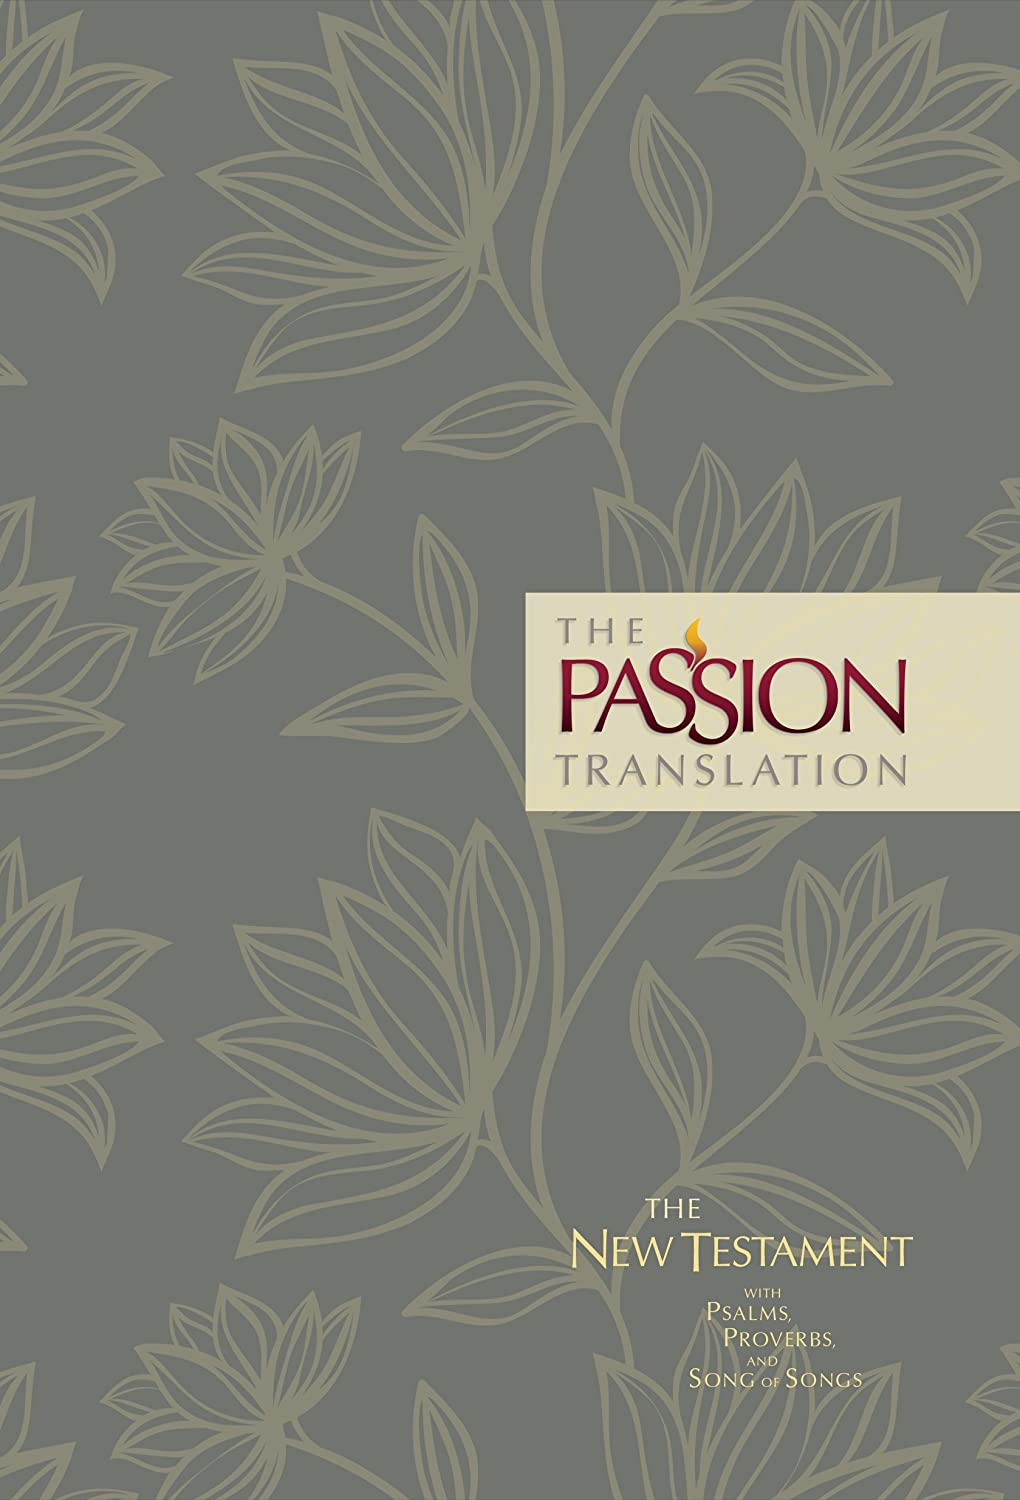 Pdf Bibles The Passion Translation New Testament (2nd Edition) Floral: With Psalms, Proverbs and Song of Songs